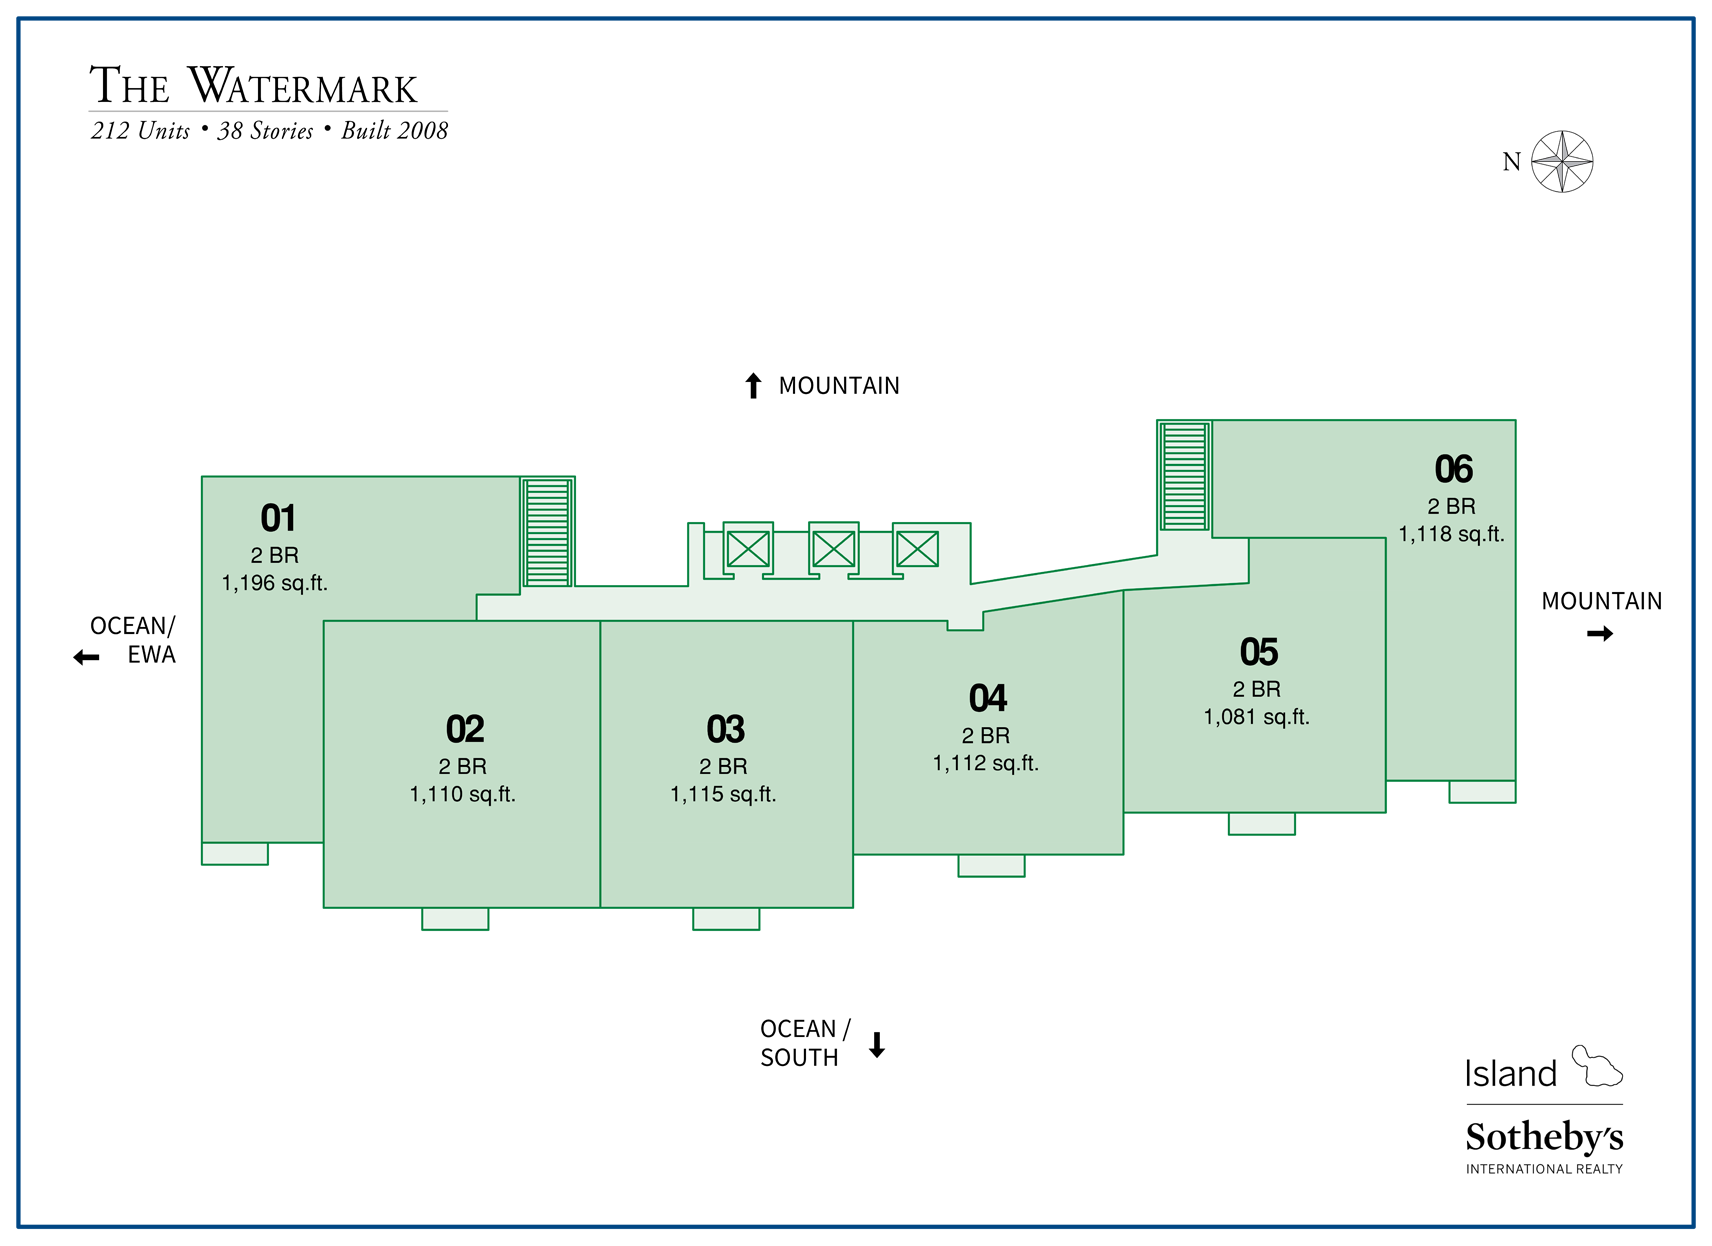 The Watermark Condo Map